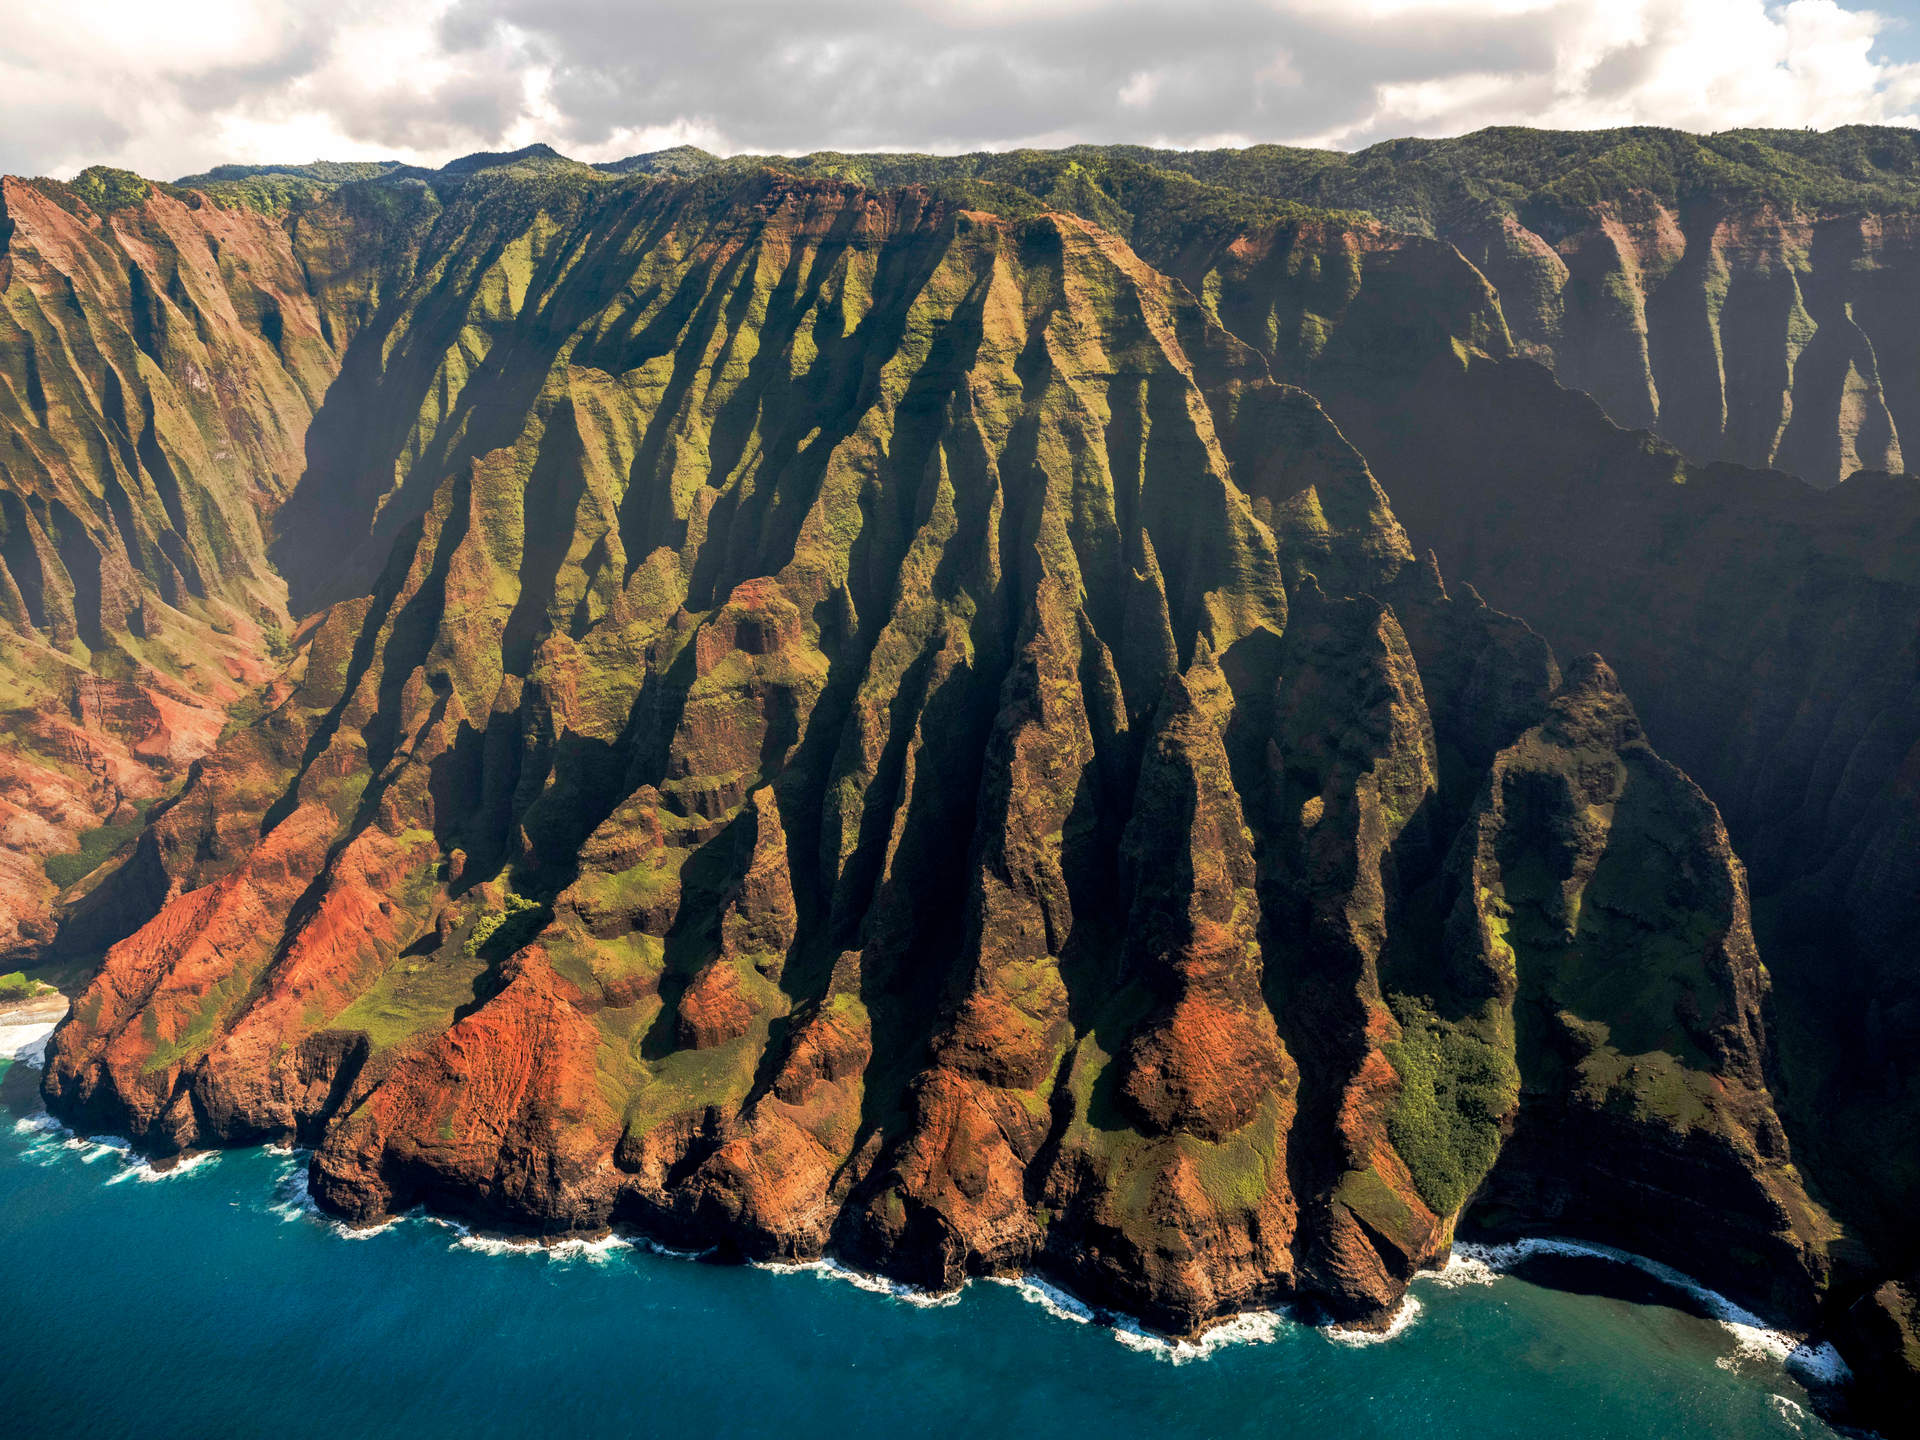 'Mighty Paws', Napali Coast, Kauai, Hawaii